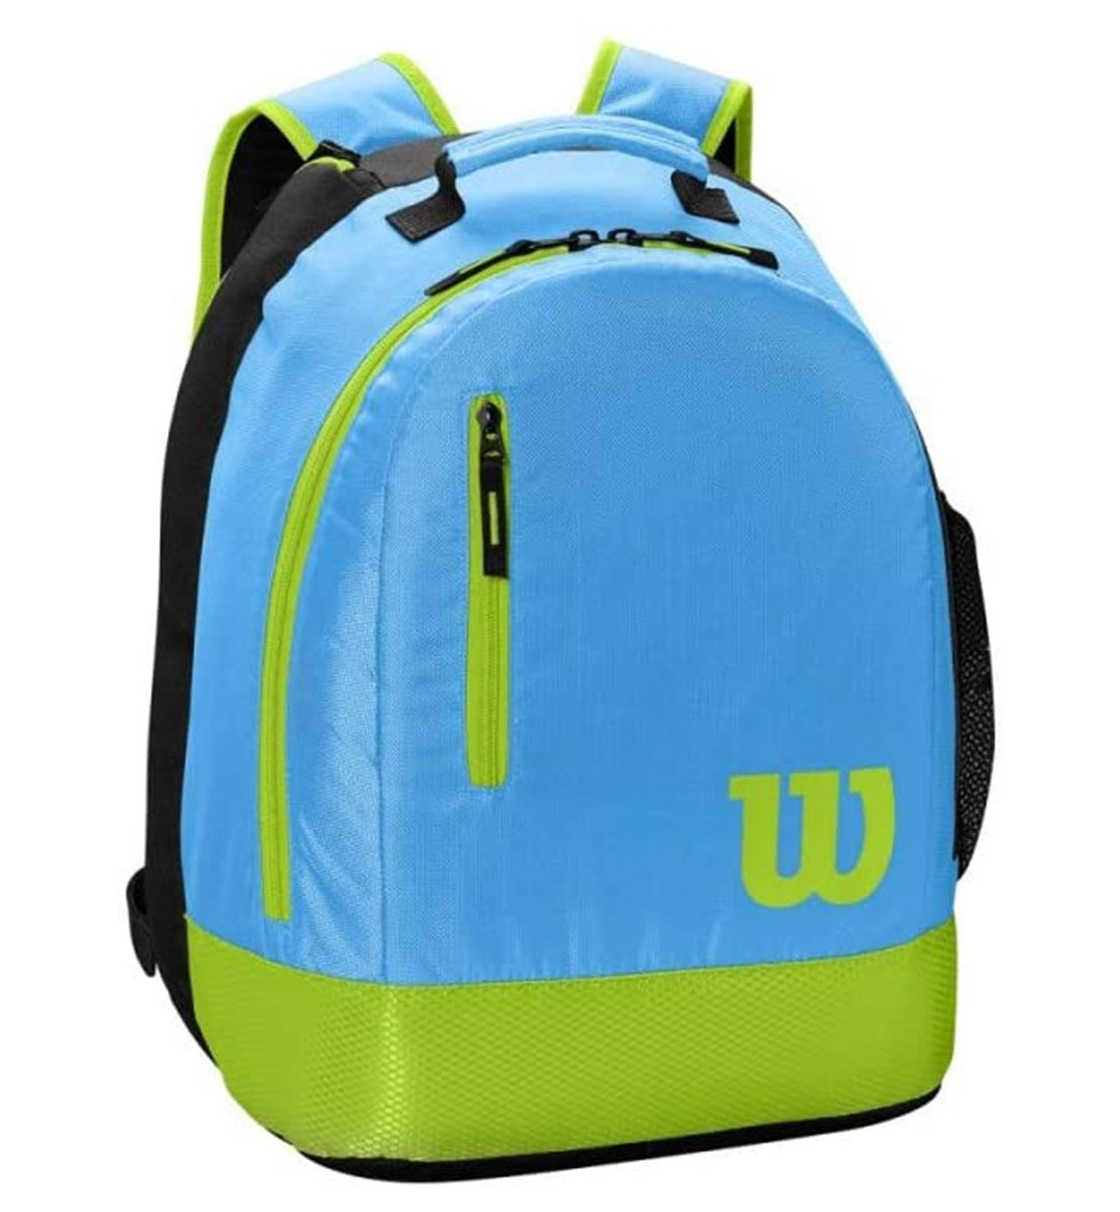 Wilson Σακίδιο Πλάτης Fw20 Wr8000003001 Youth Backpack WR8000003001